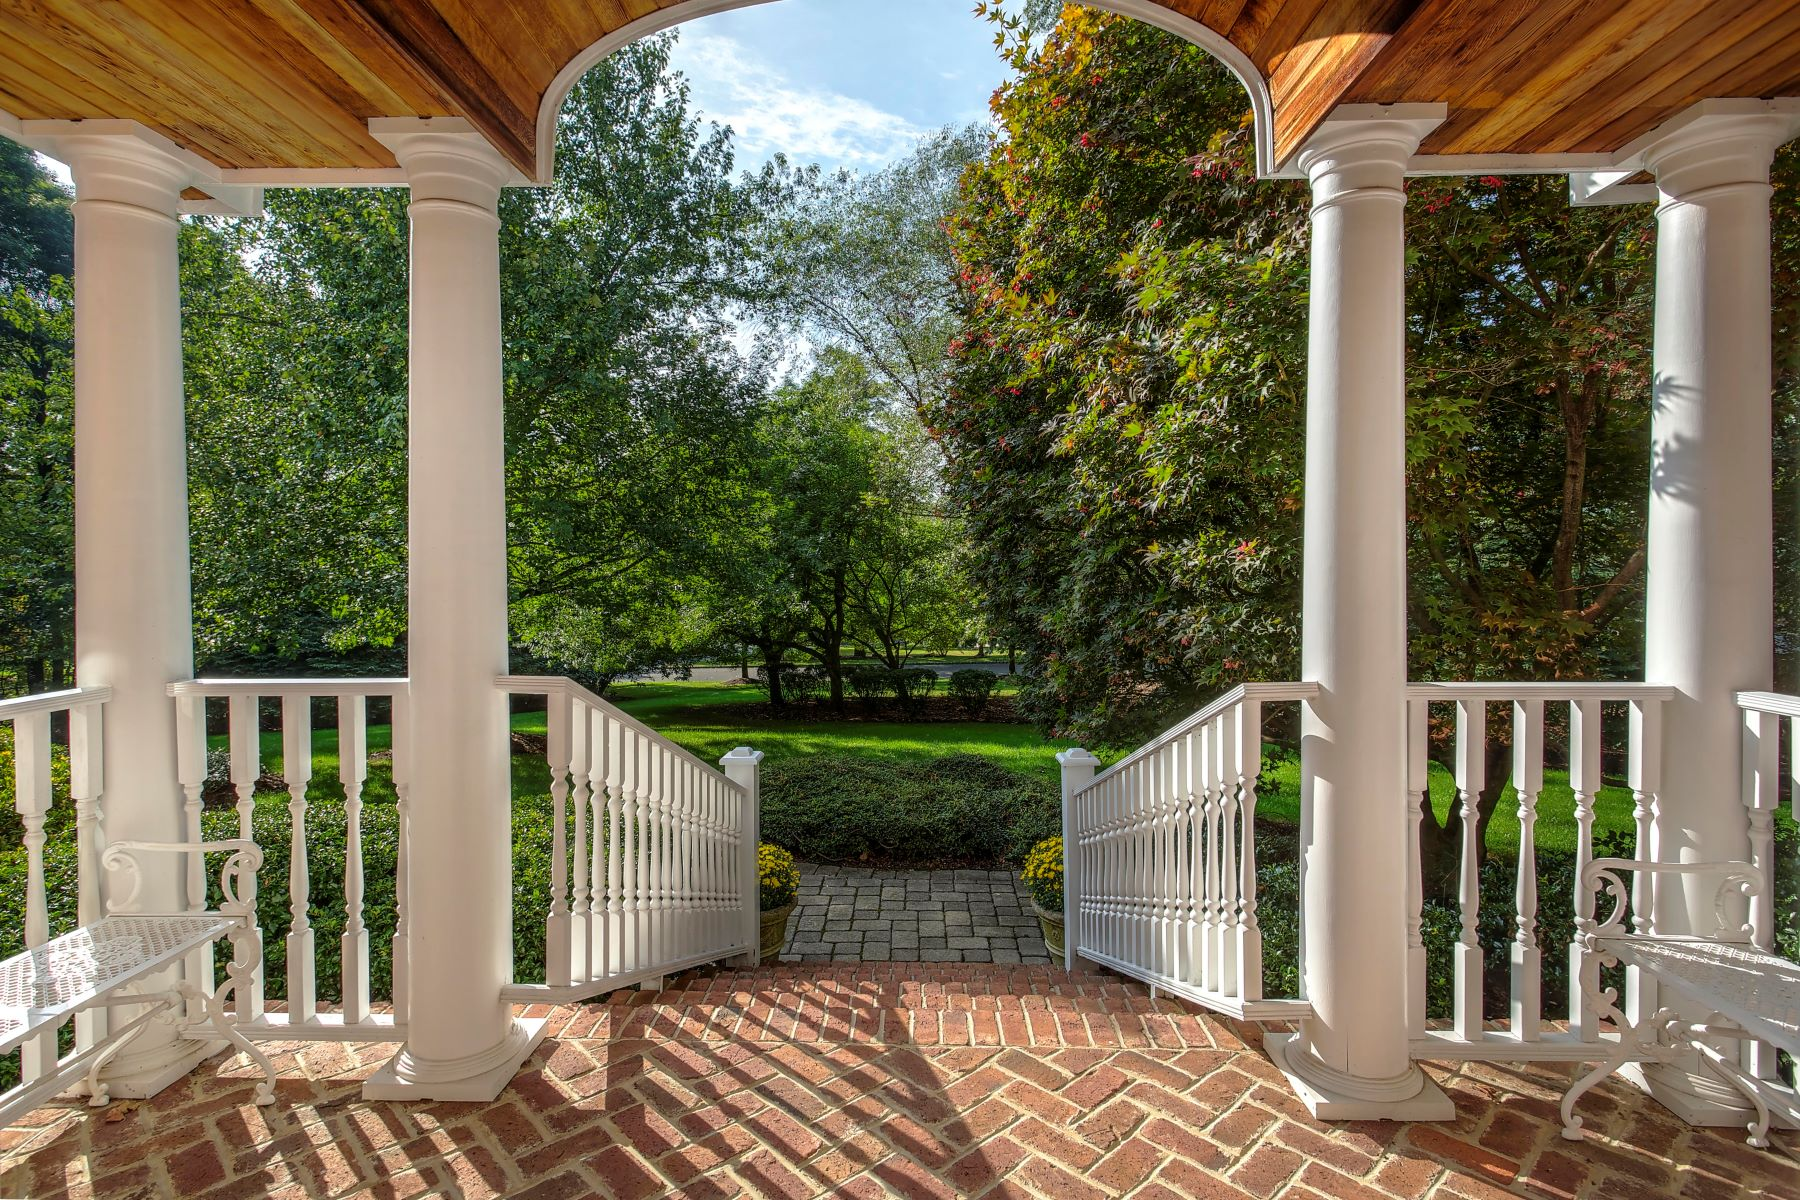 House for Sale at Exceptional Value in Premier Location 94 Emily Road Basking Ridge, New Jersey 07920 United States